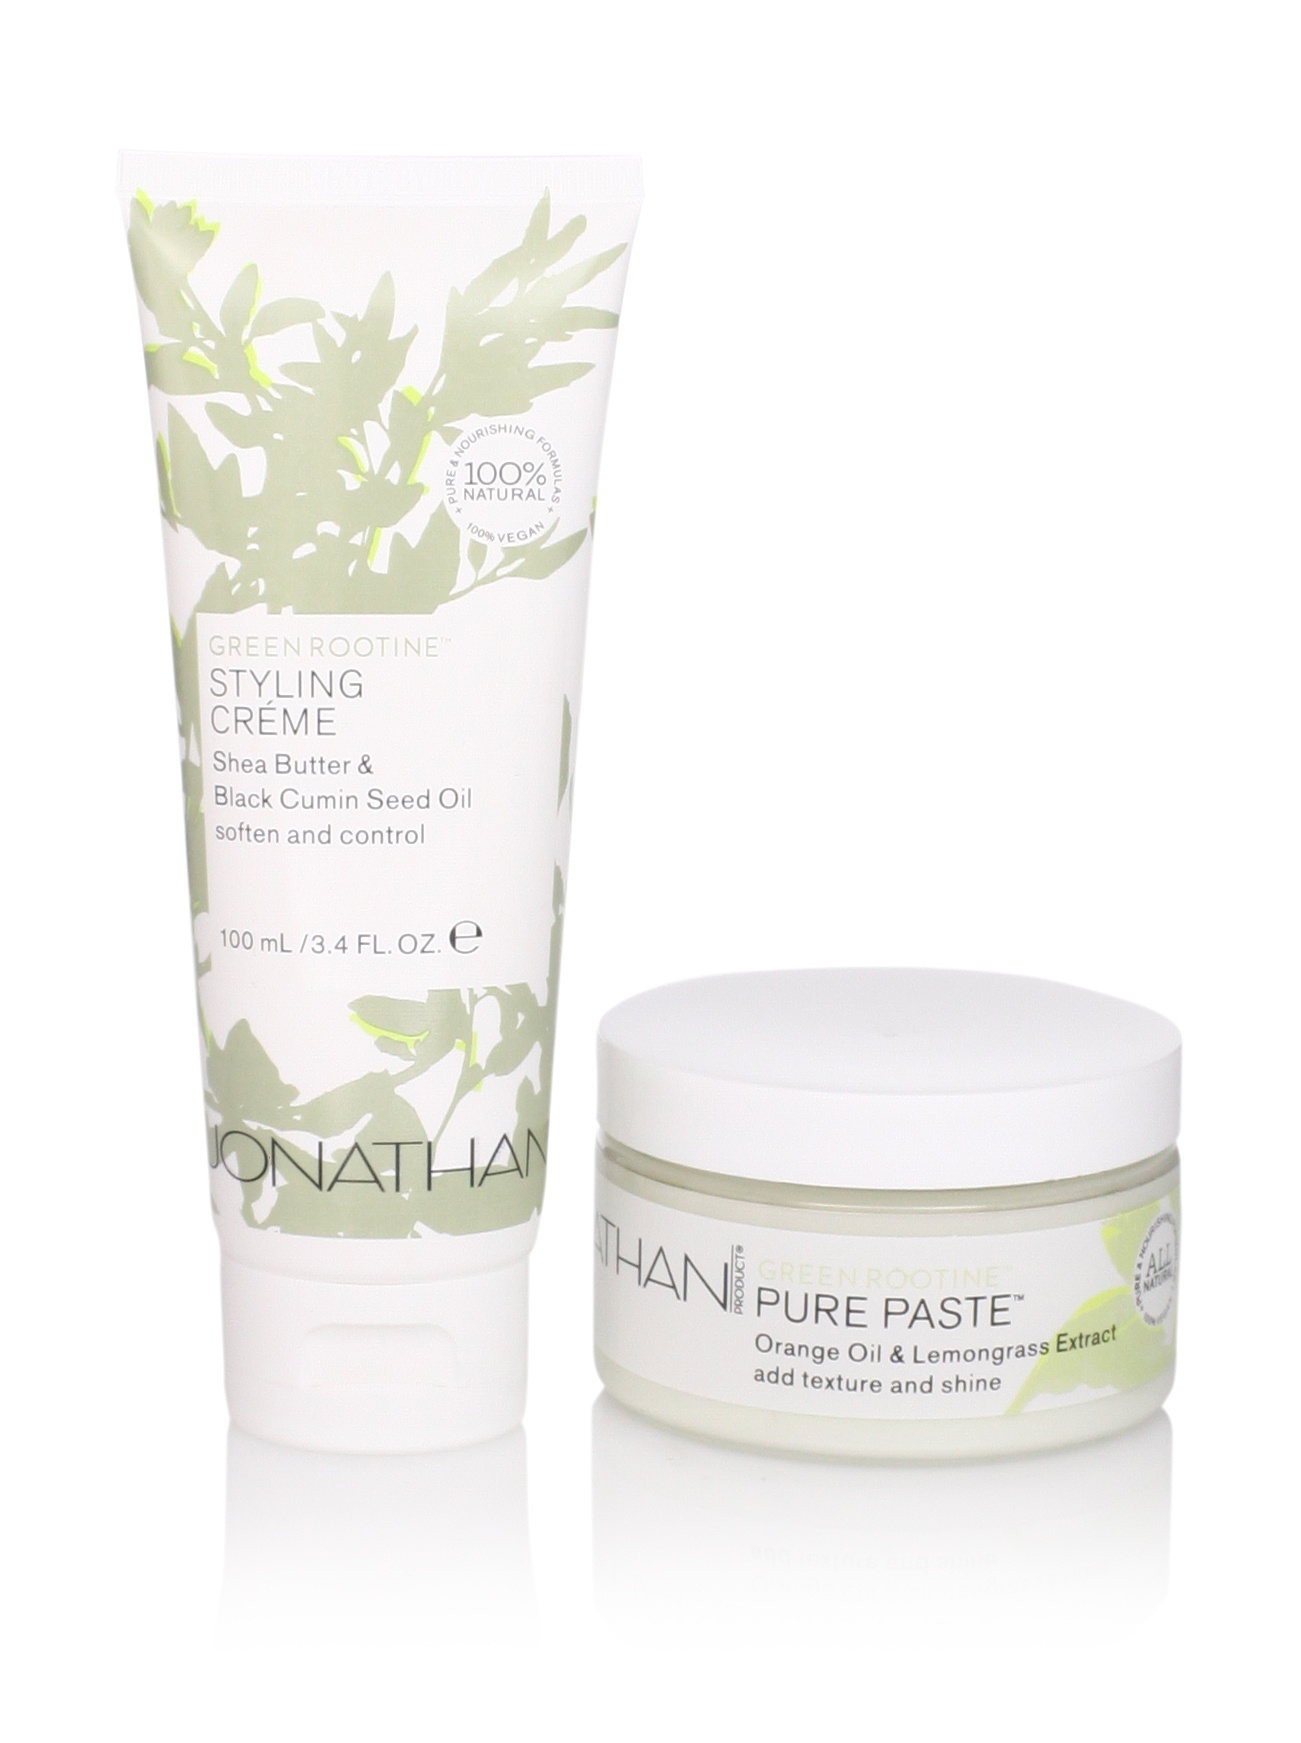 Jonathan Product Green Rootine Pure Paste and Styling Crème, 2 Pack